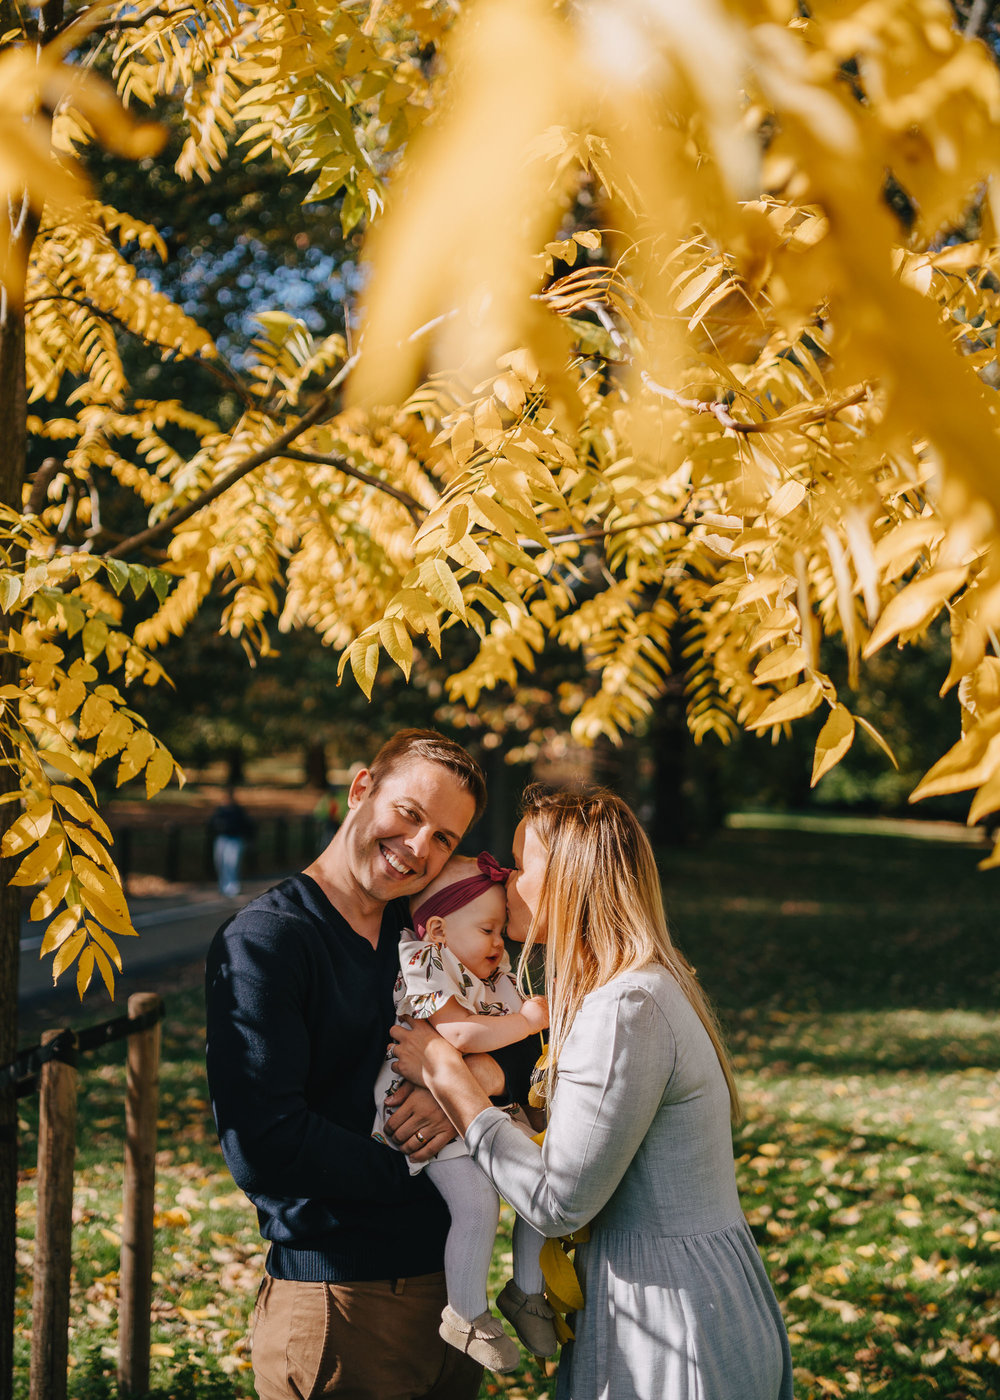 Natural Family Portrait Photographer, London